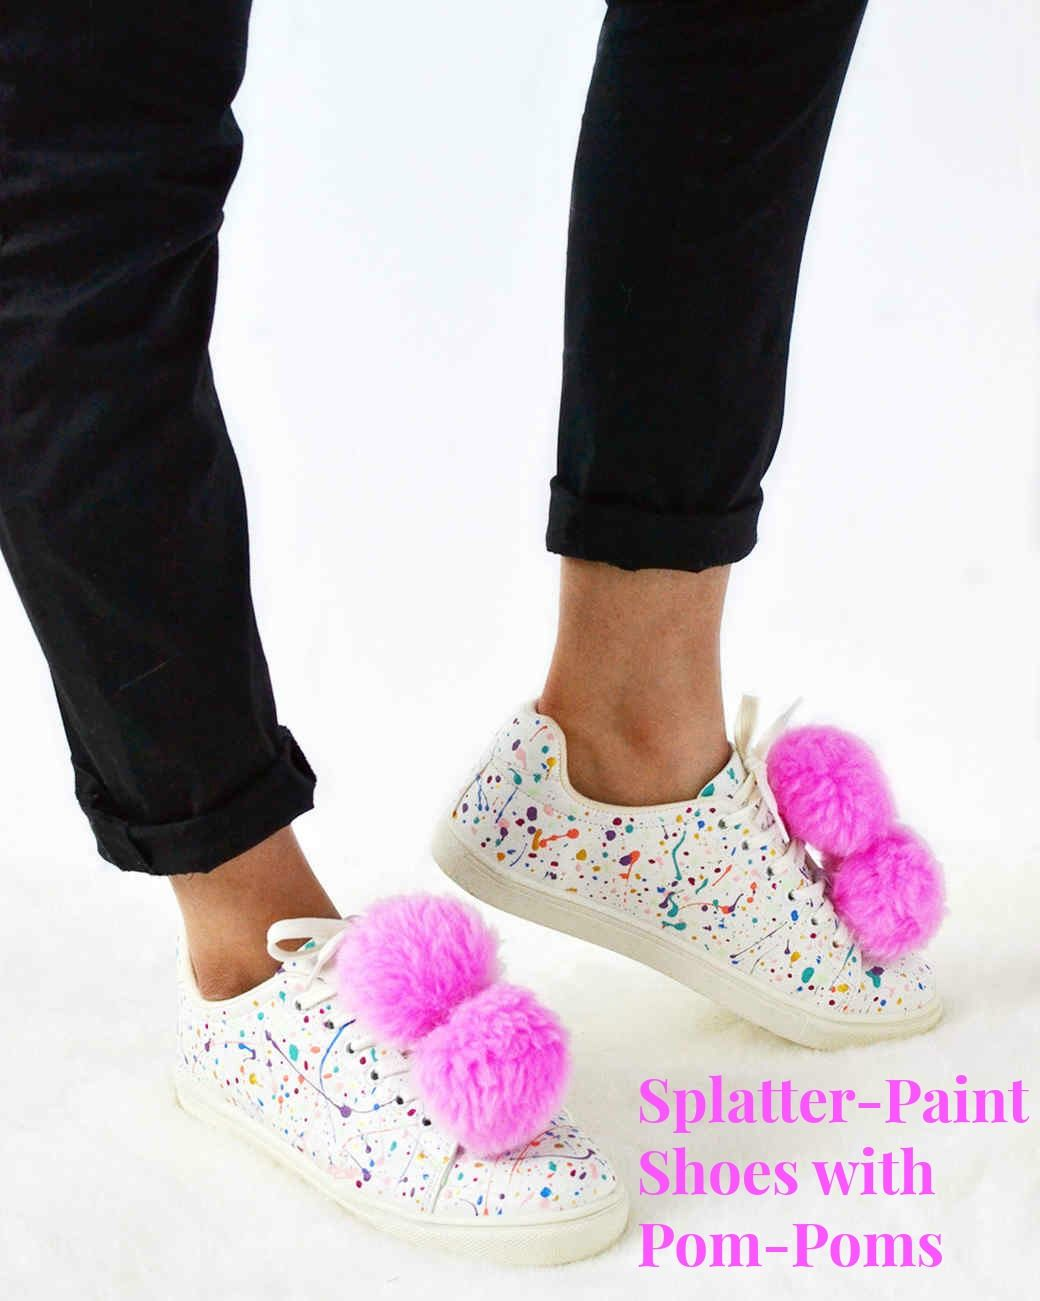 Splatter-Paint Shoes with Pom-Poms